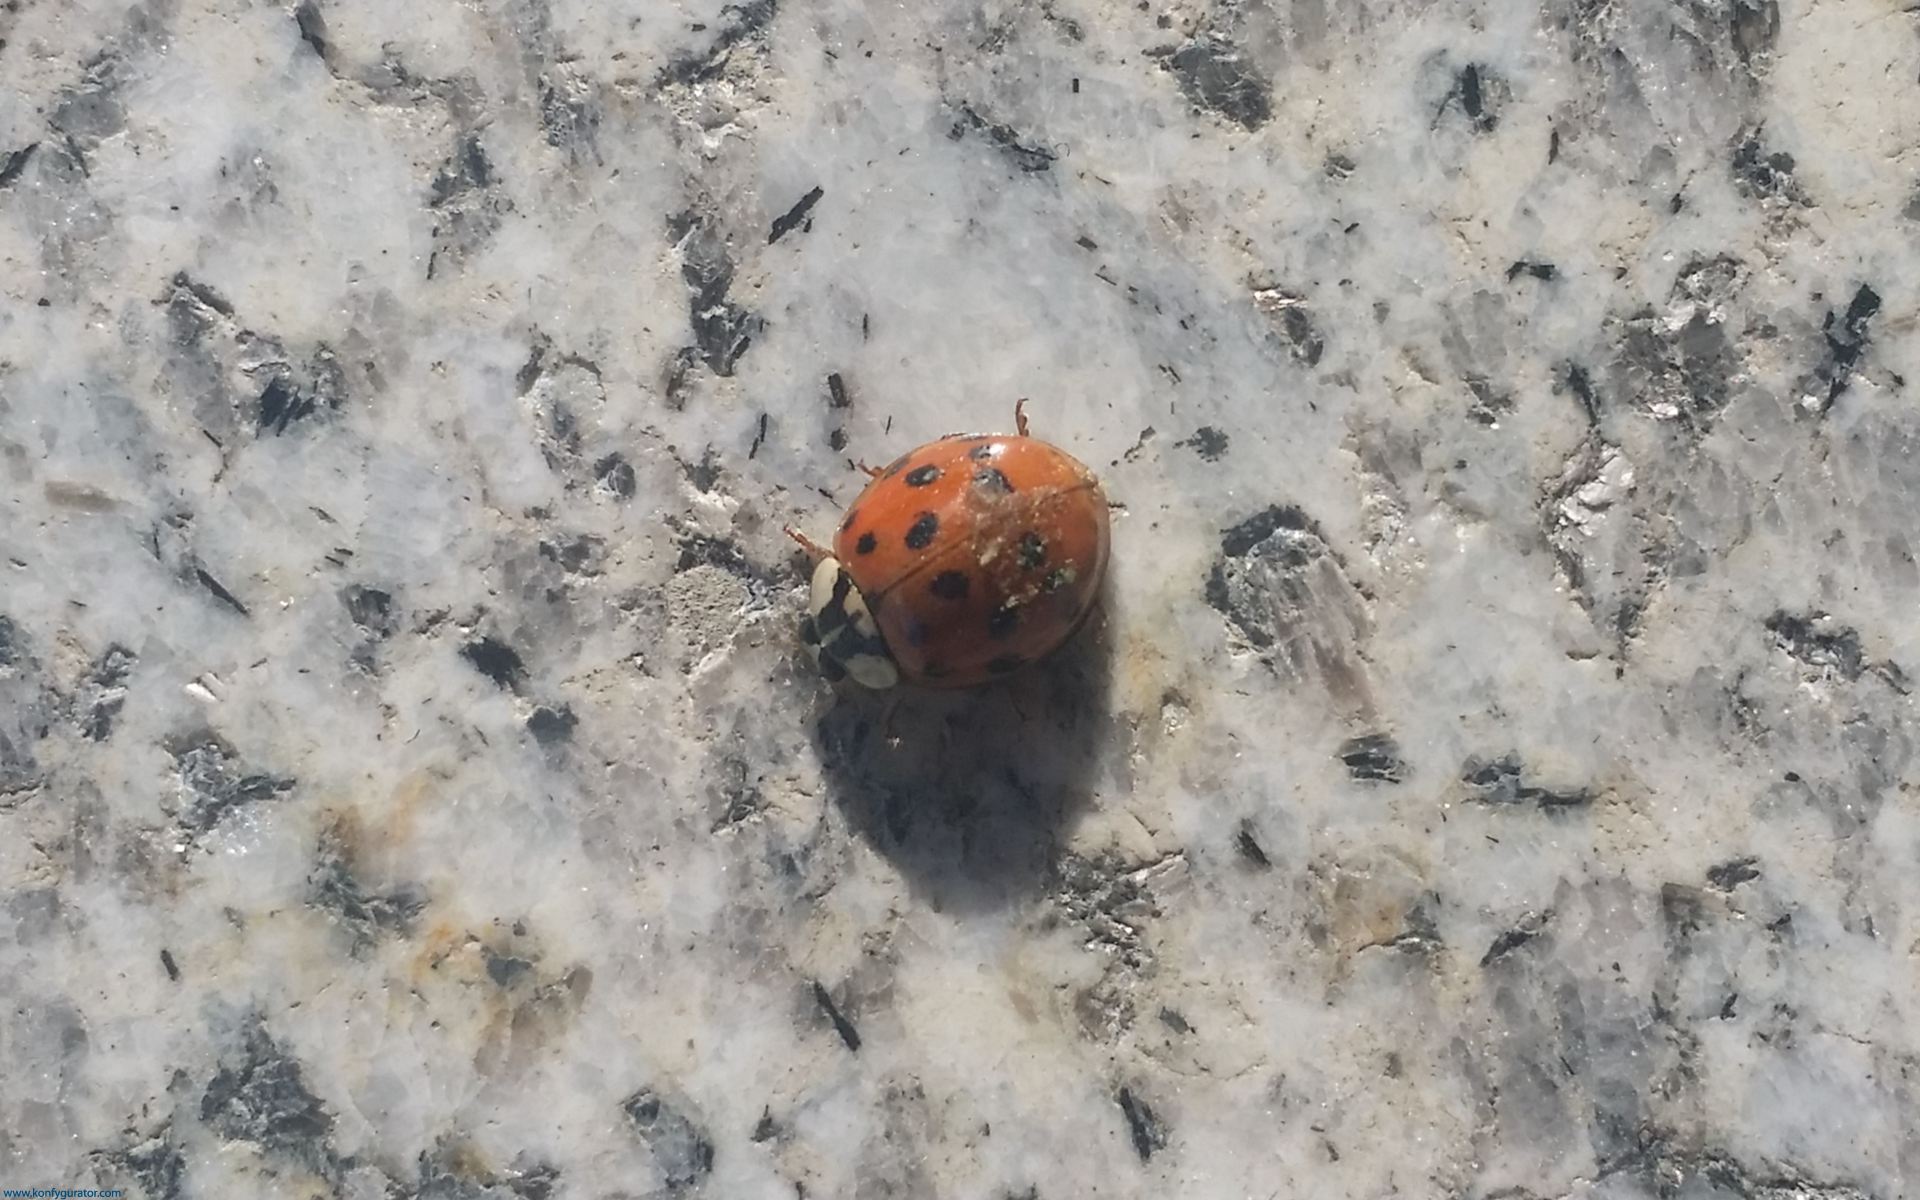 HD Wallpapers - Nature - ladybug, stone, gray